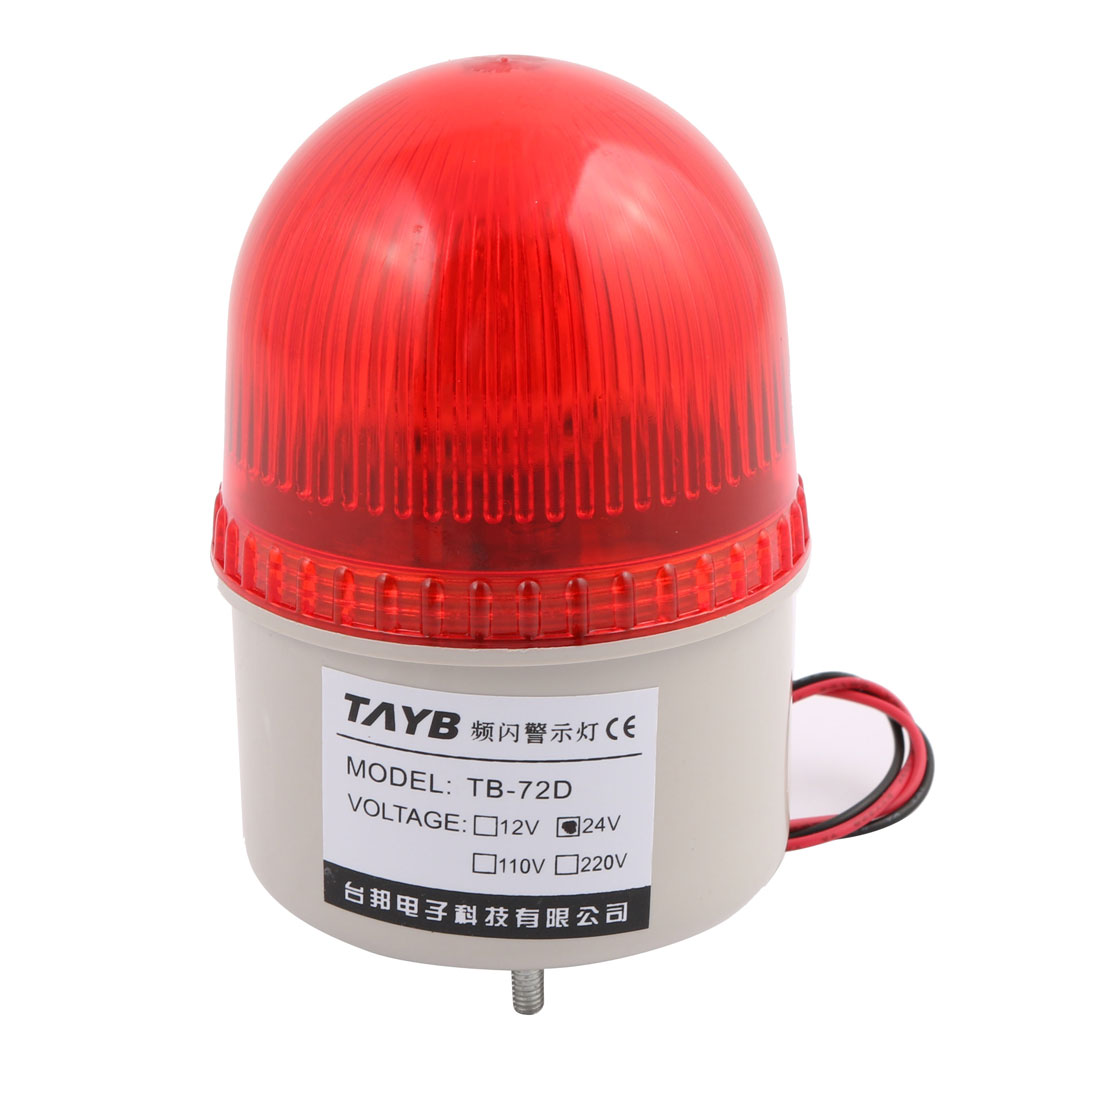 DC 24V Buzzer Sound Rotating Industrial Signal Tower Warning Light Red TB-72D